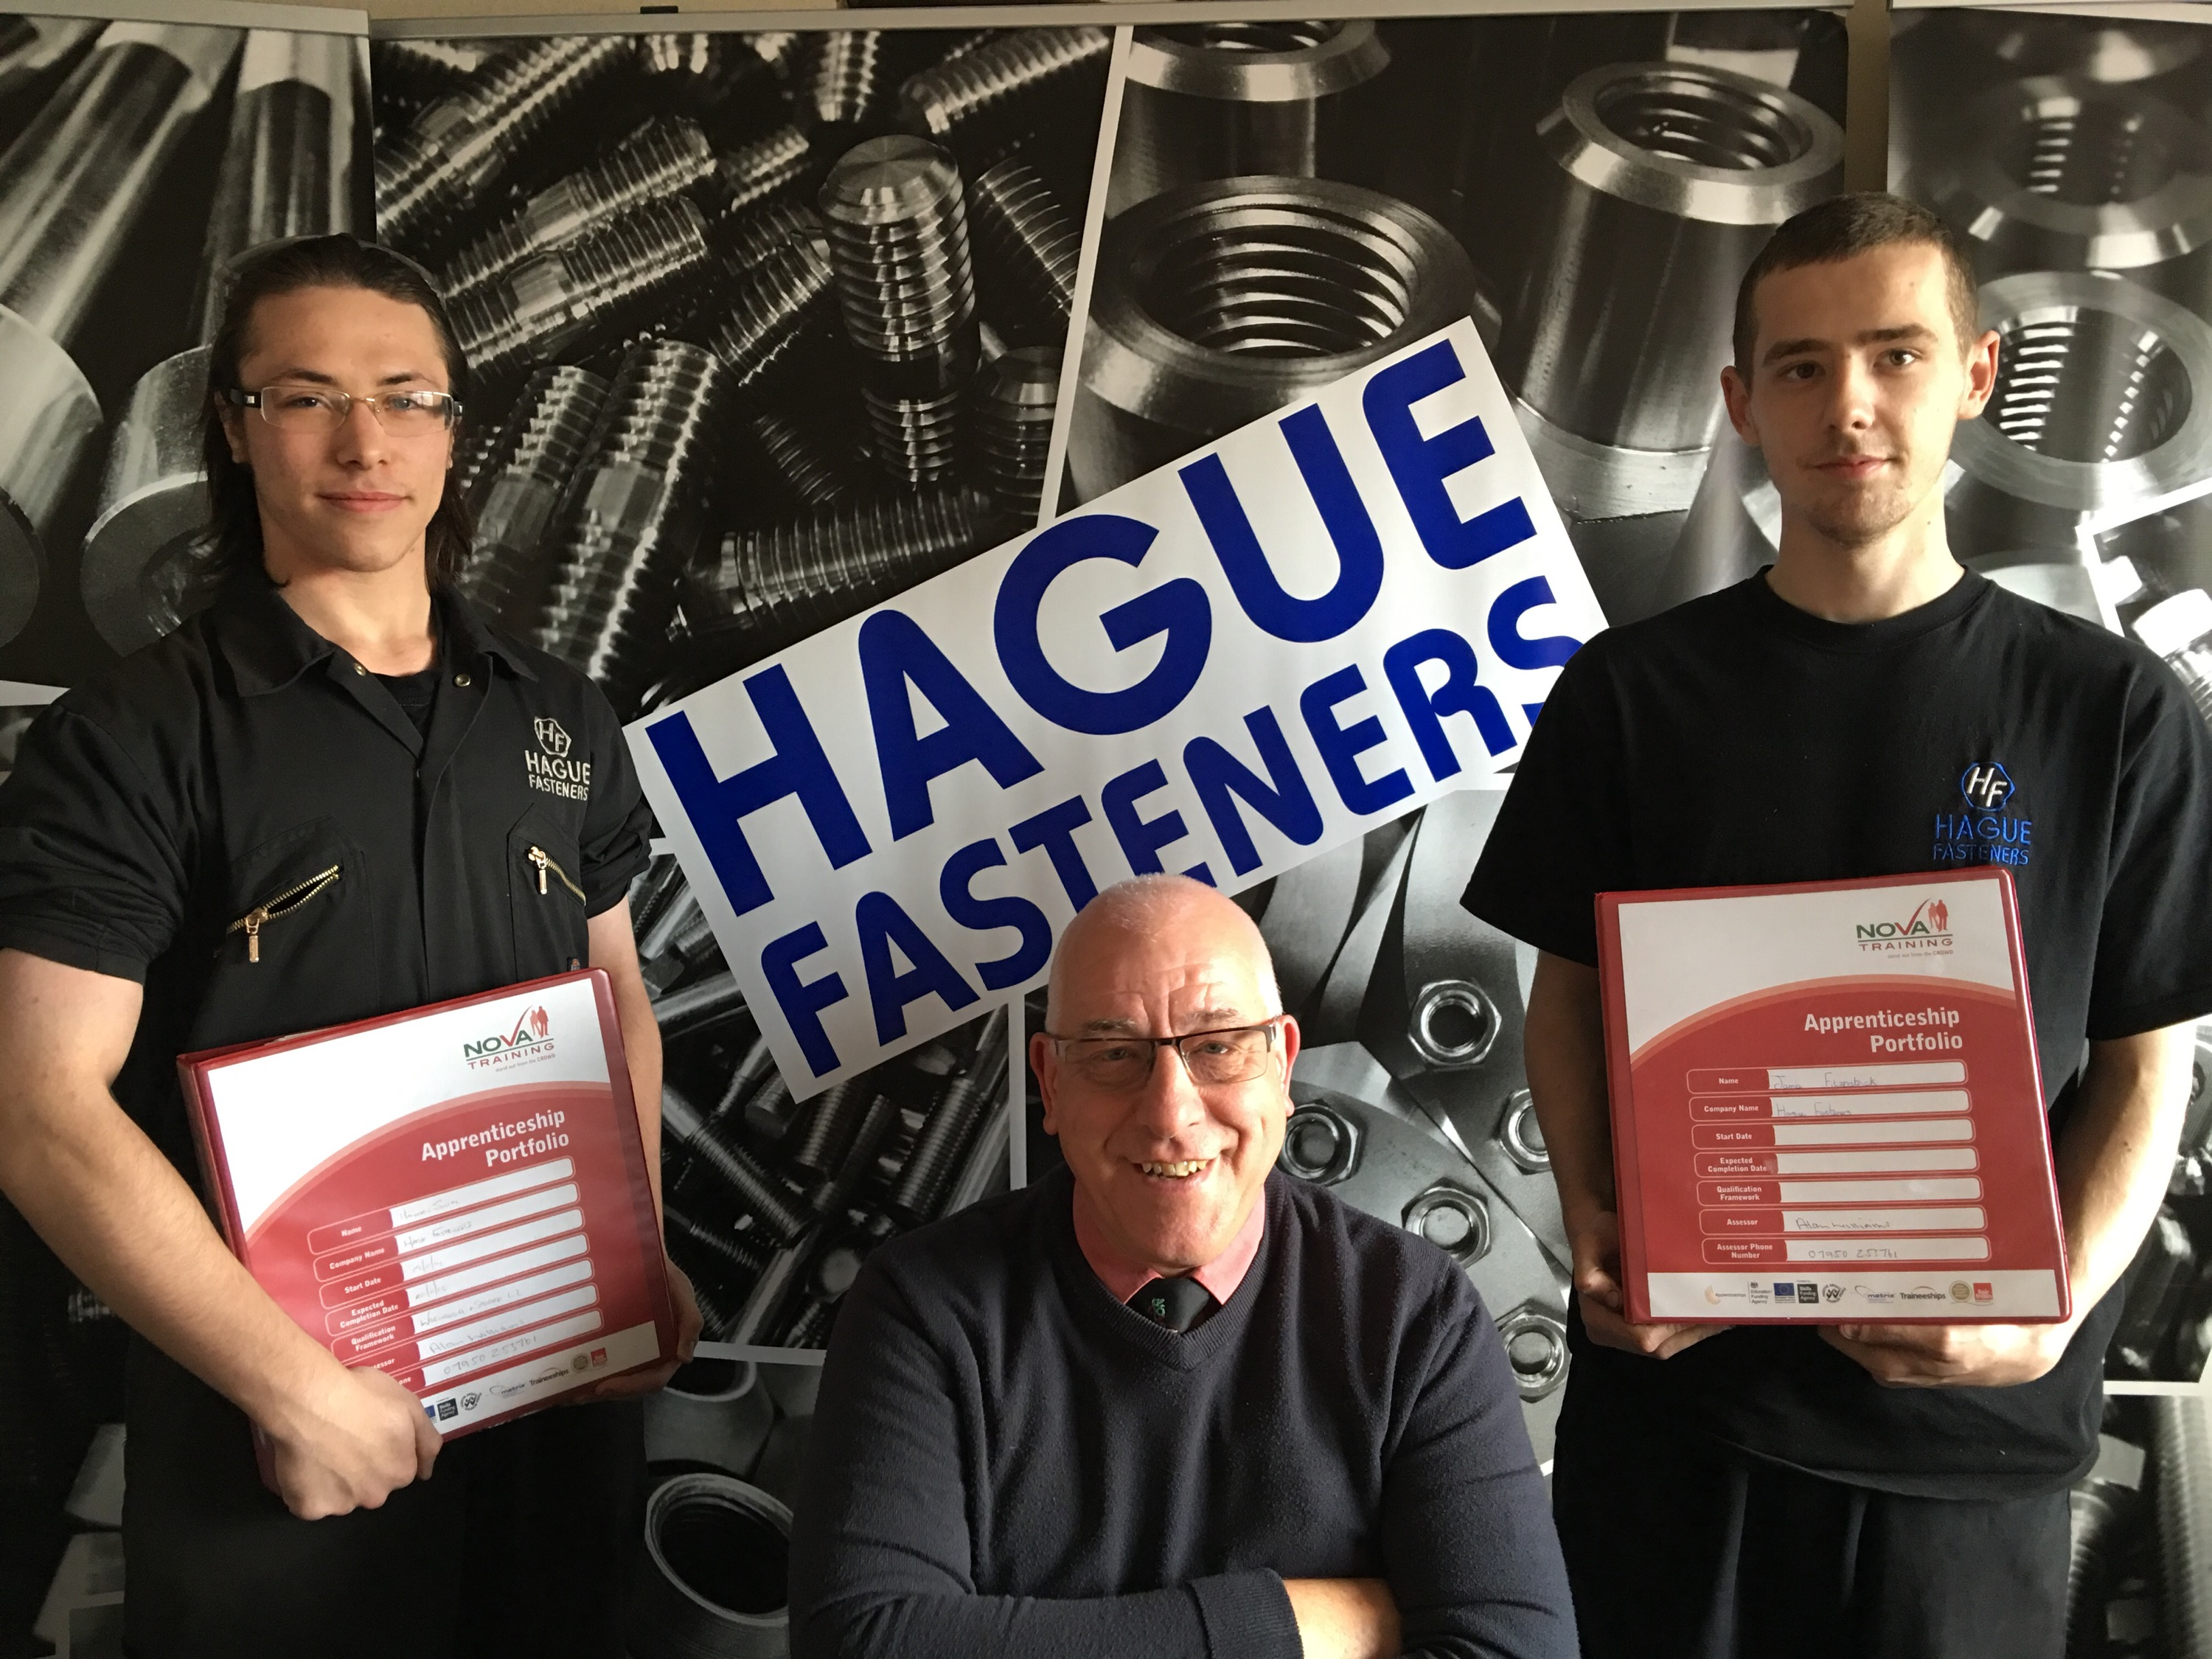 Hague Fasteners Engineering Apprenticeships